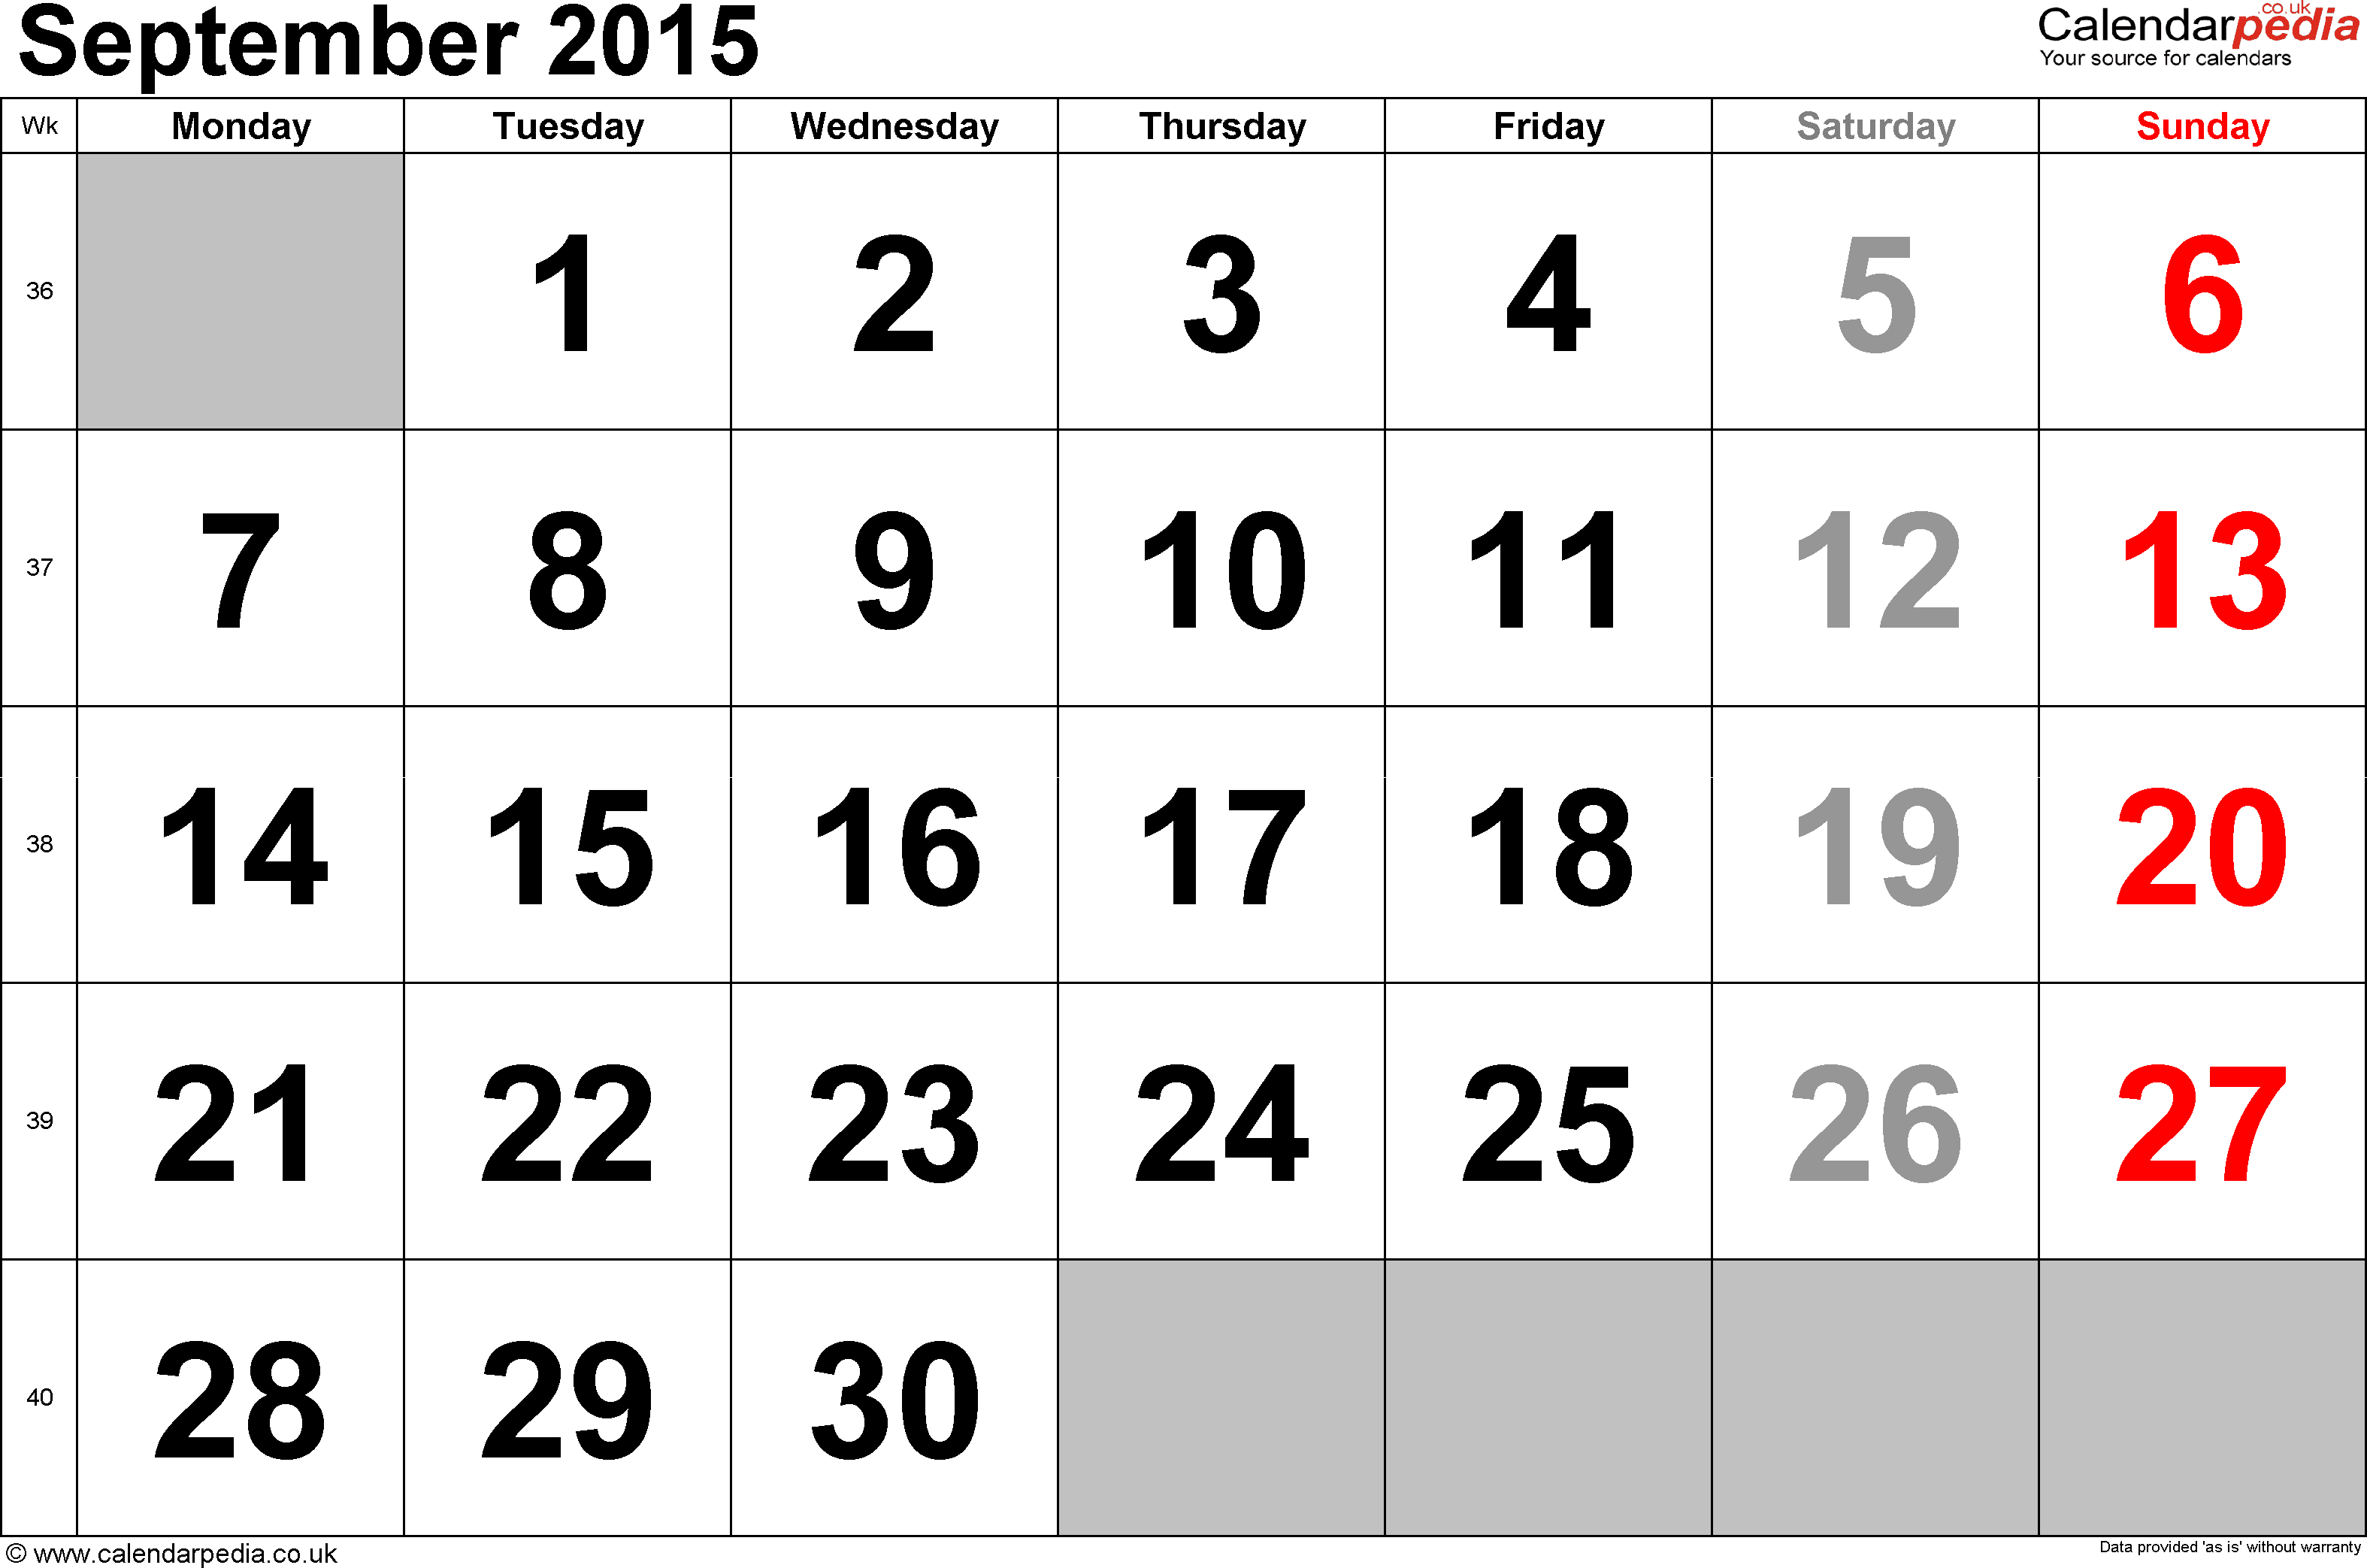 Calendar September 2015, landscape orientation, large numerals, 1 page, with UK bank holidays and week numbers